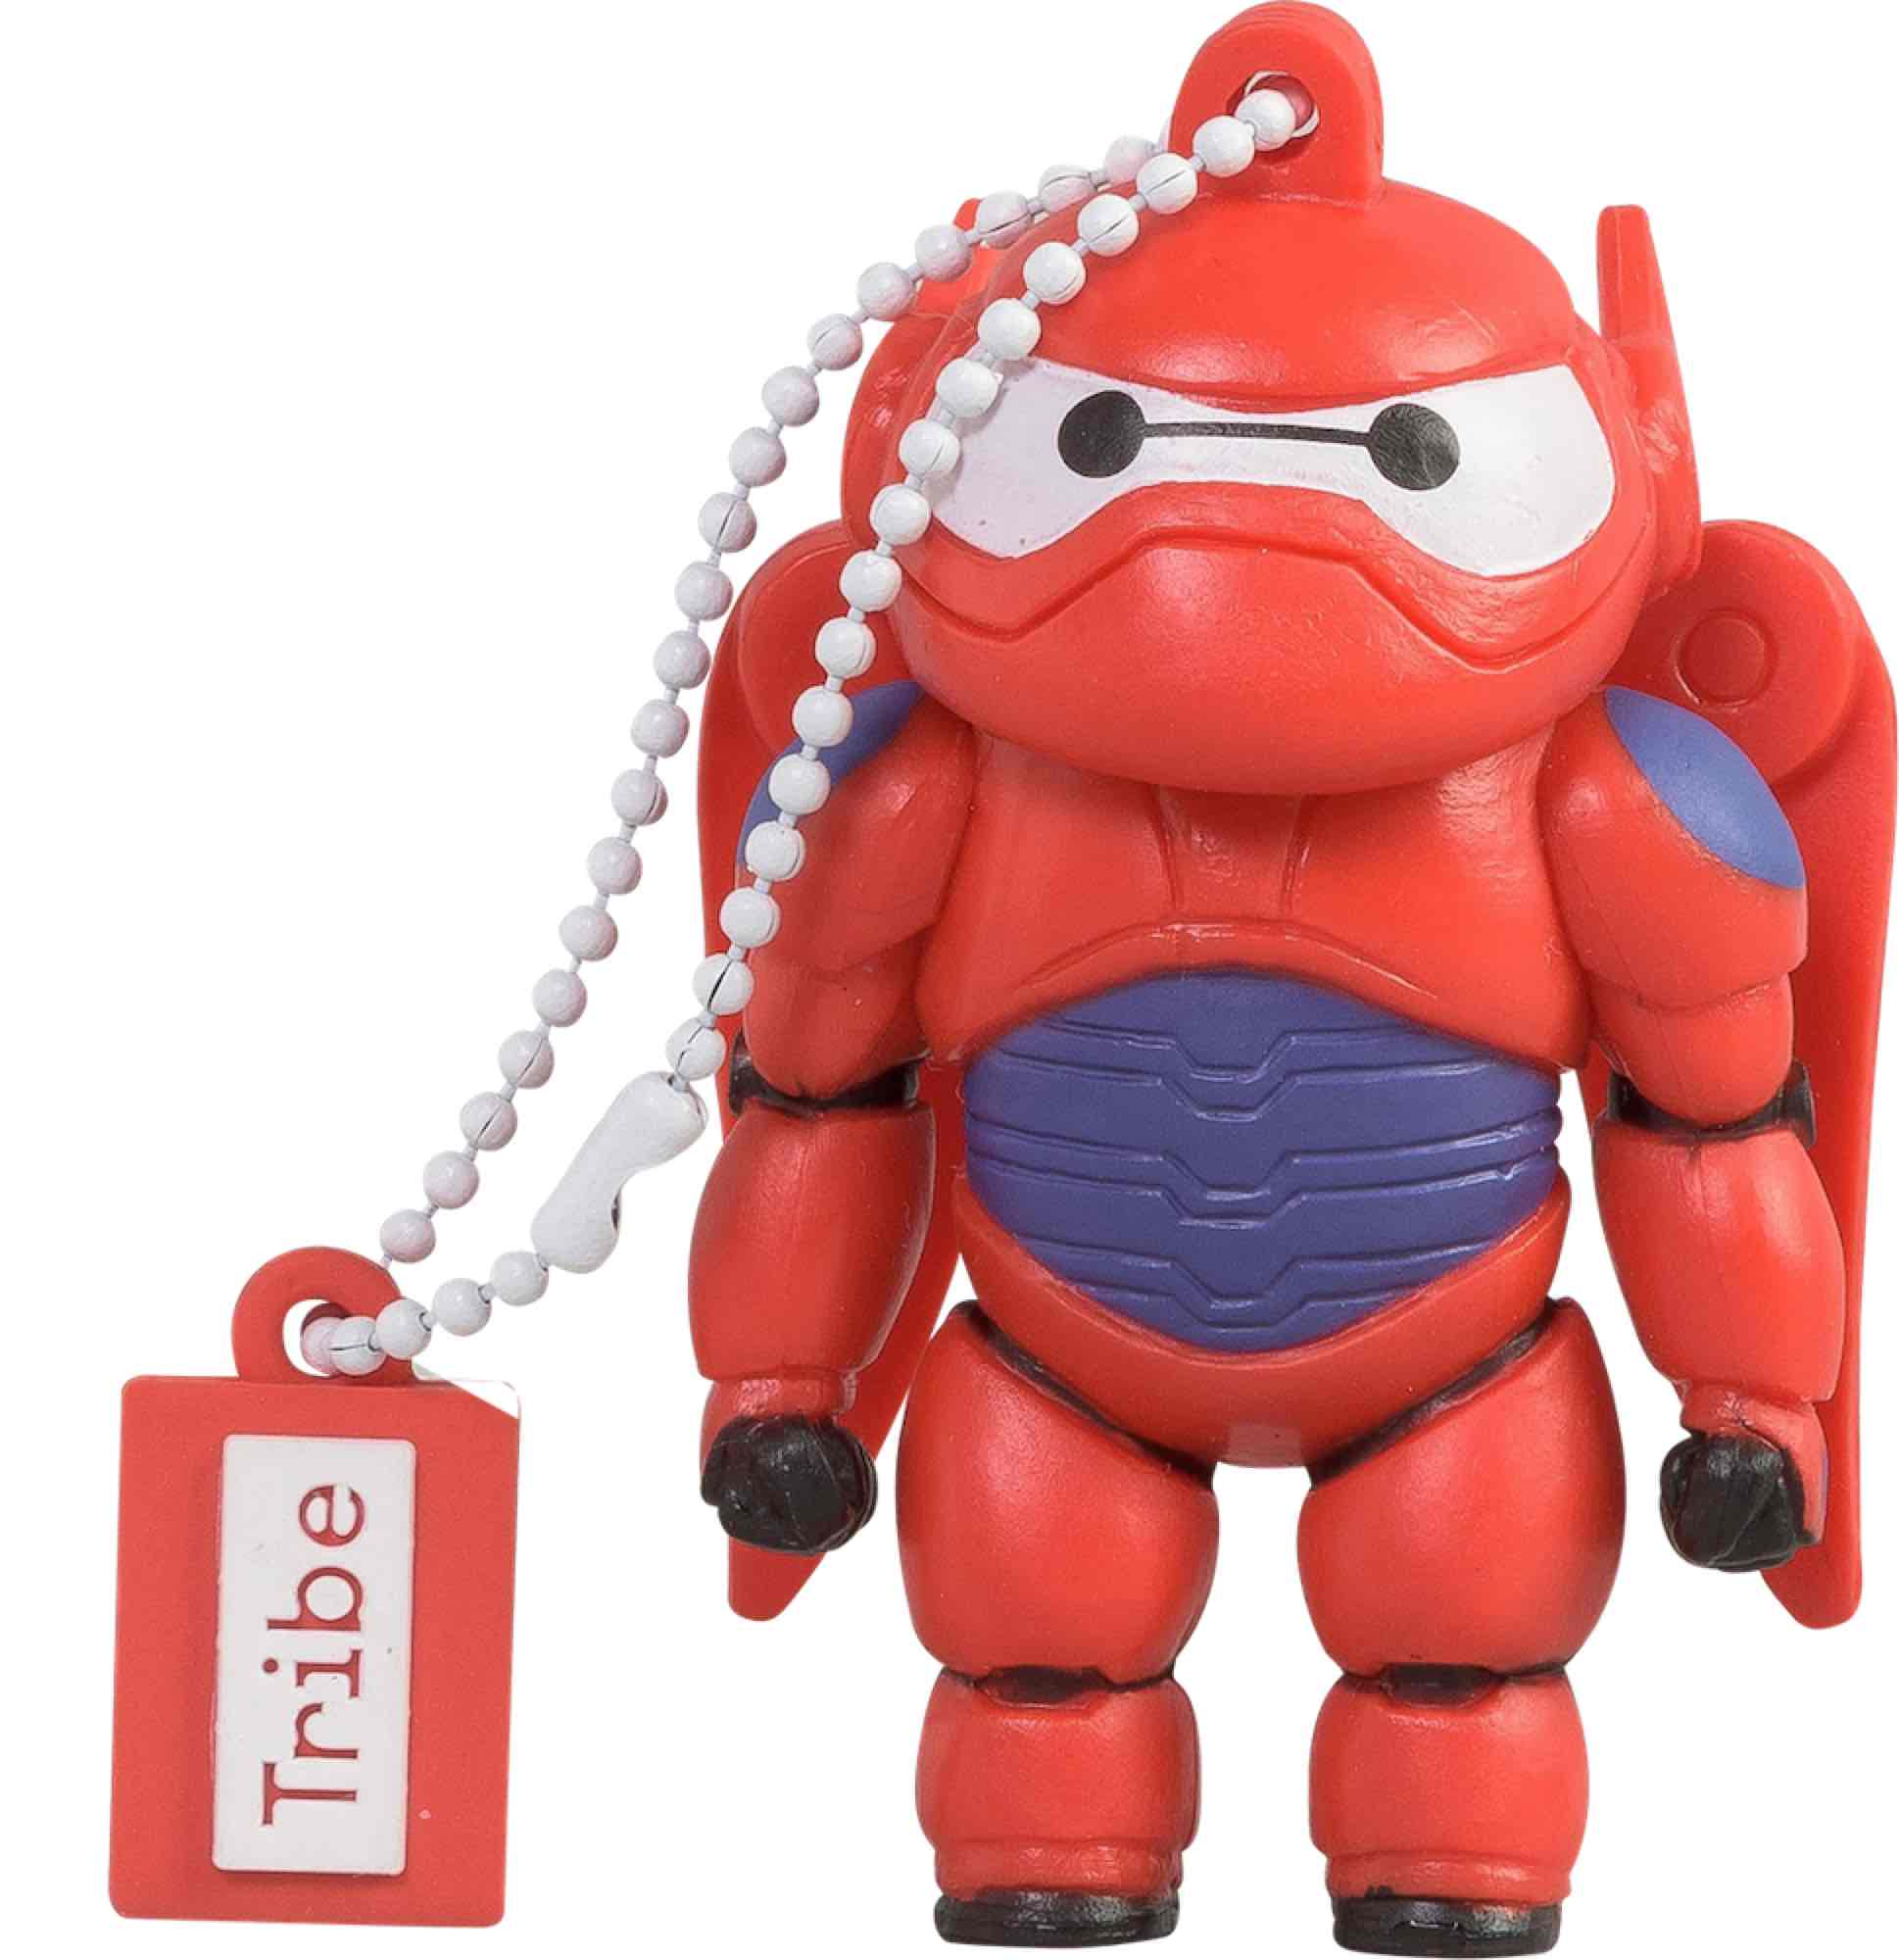 BAYMAX BLINDADO MEMORIA USB 16 GB PIXAR BIG HERO 6